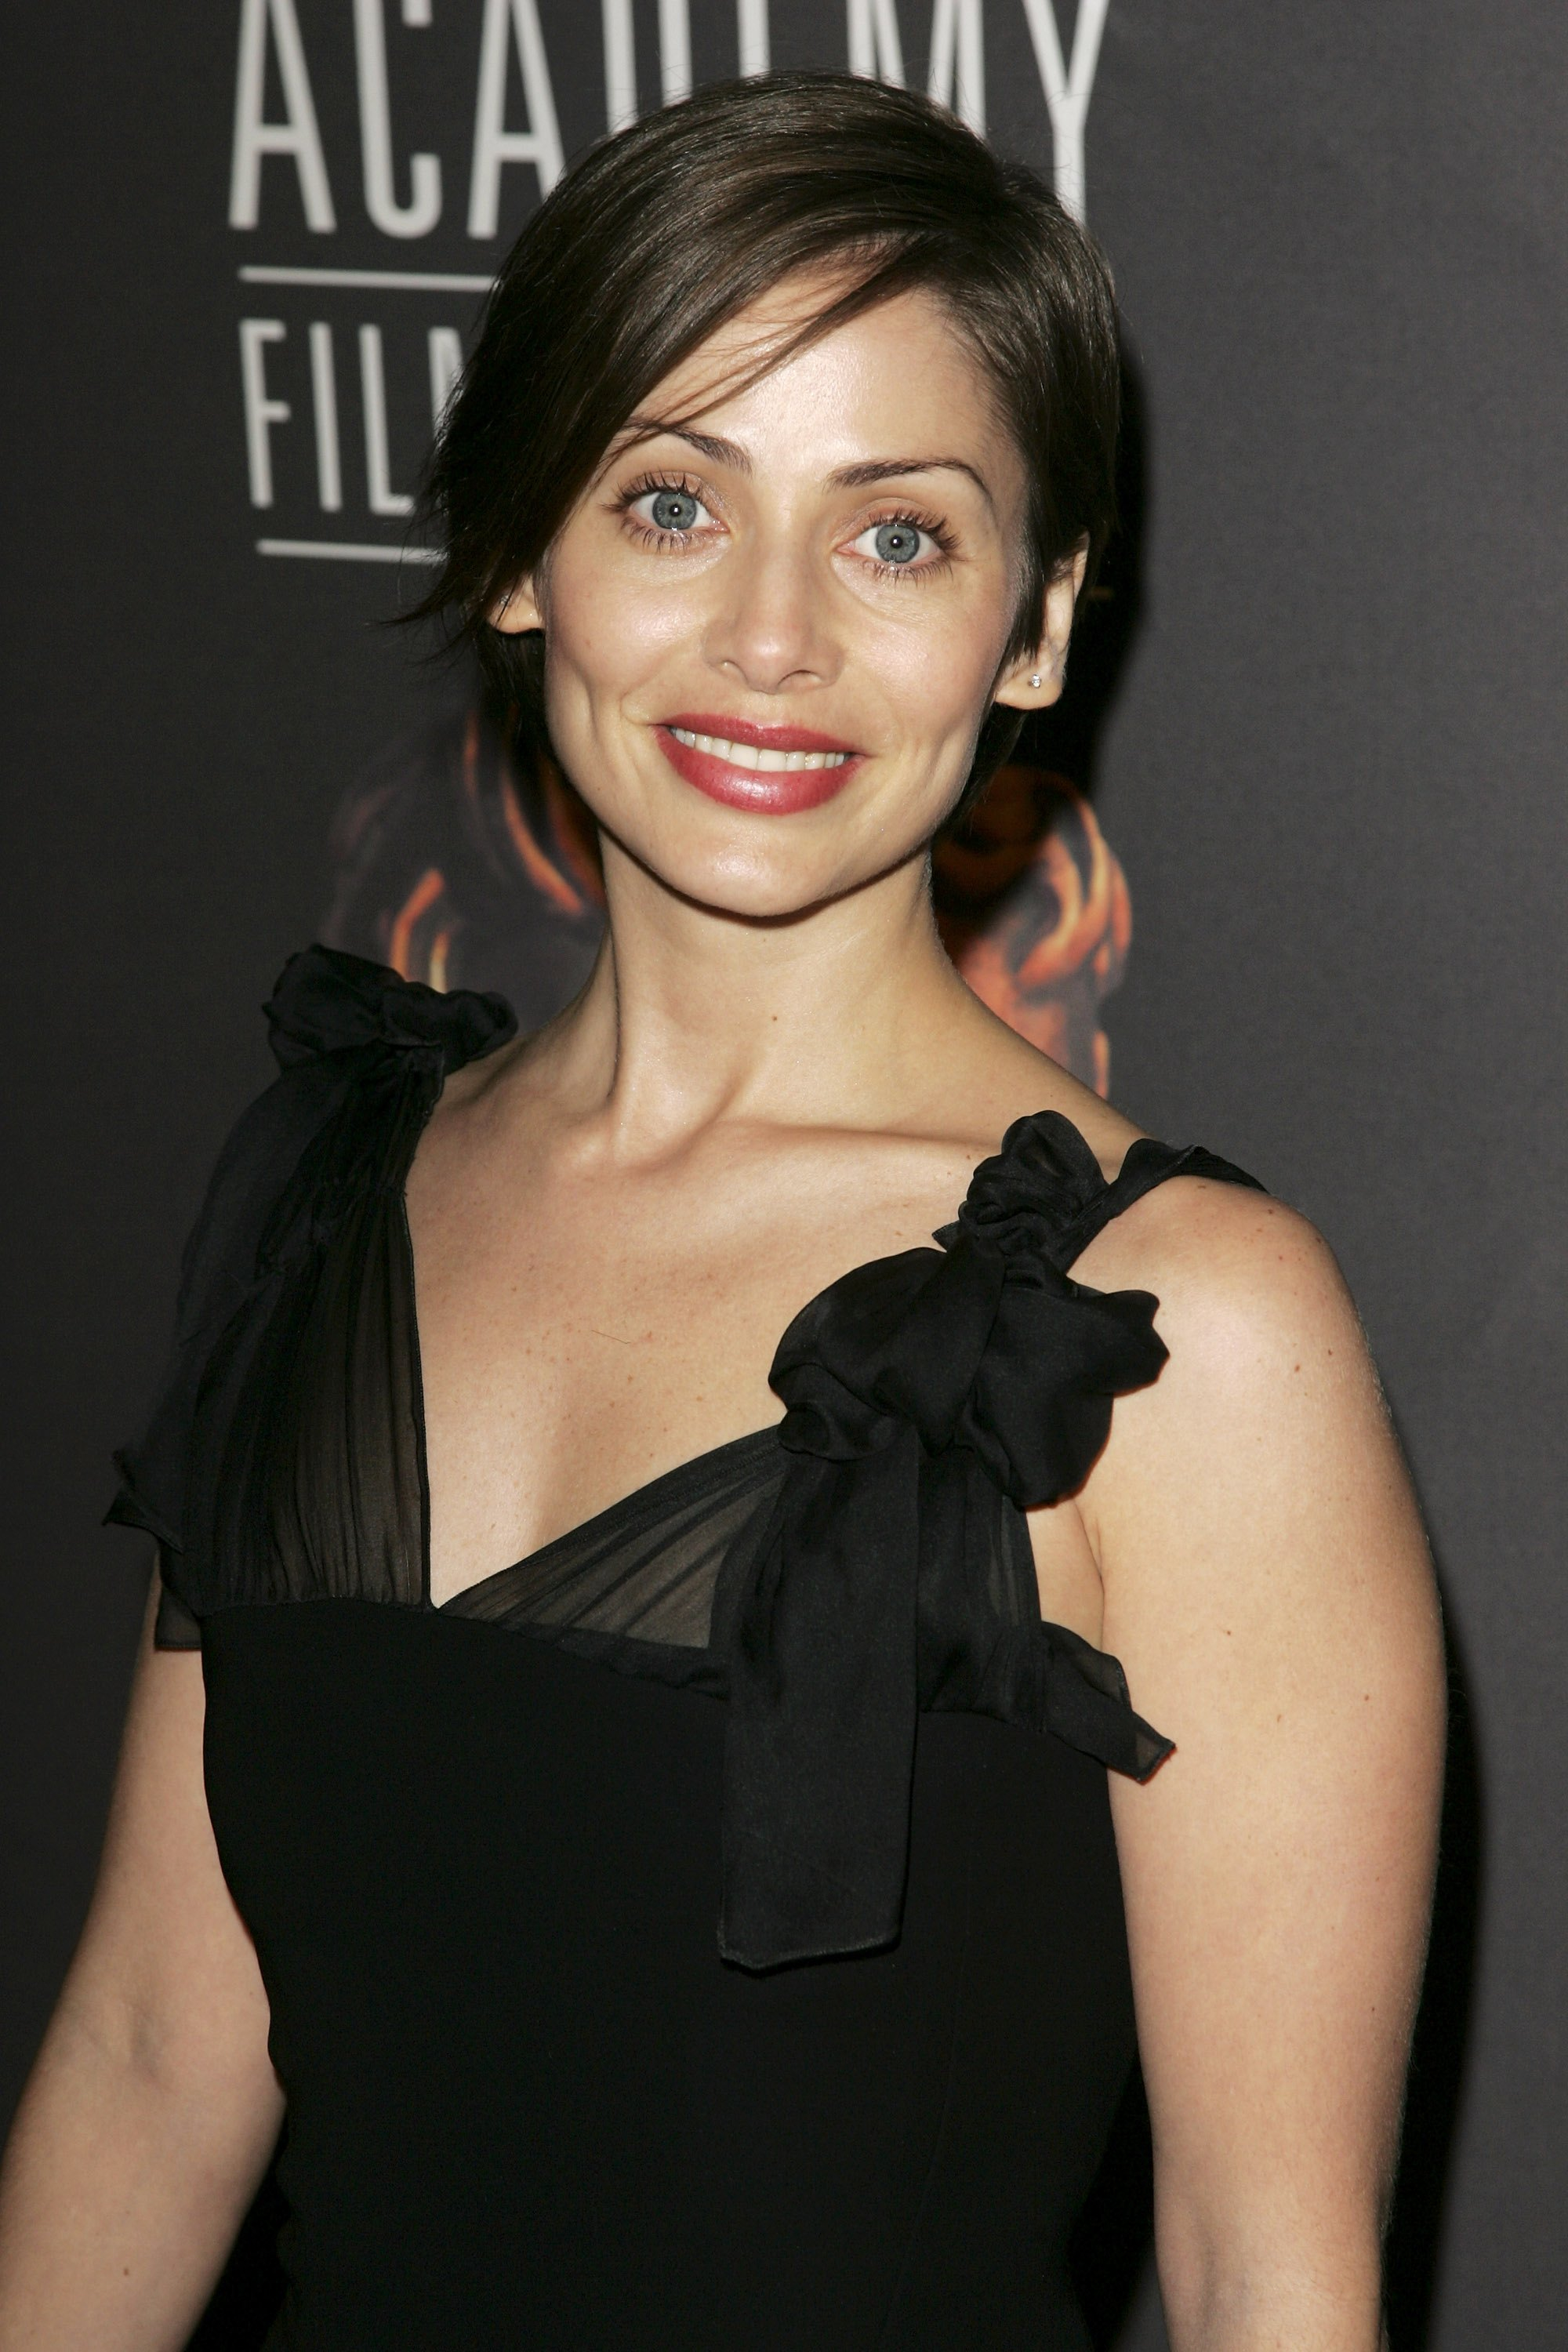 Natalie Imbruglia Photo 277 Of 447 Pics Wallpaper Photo